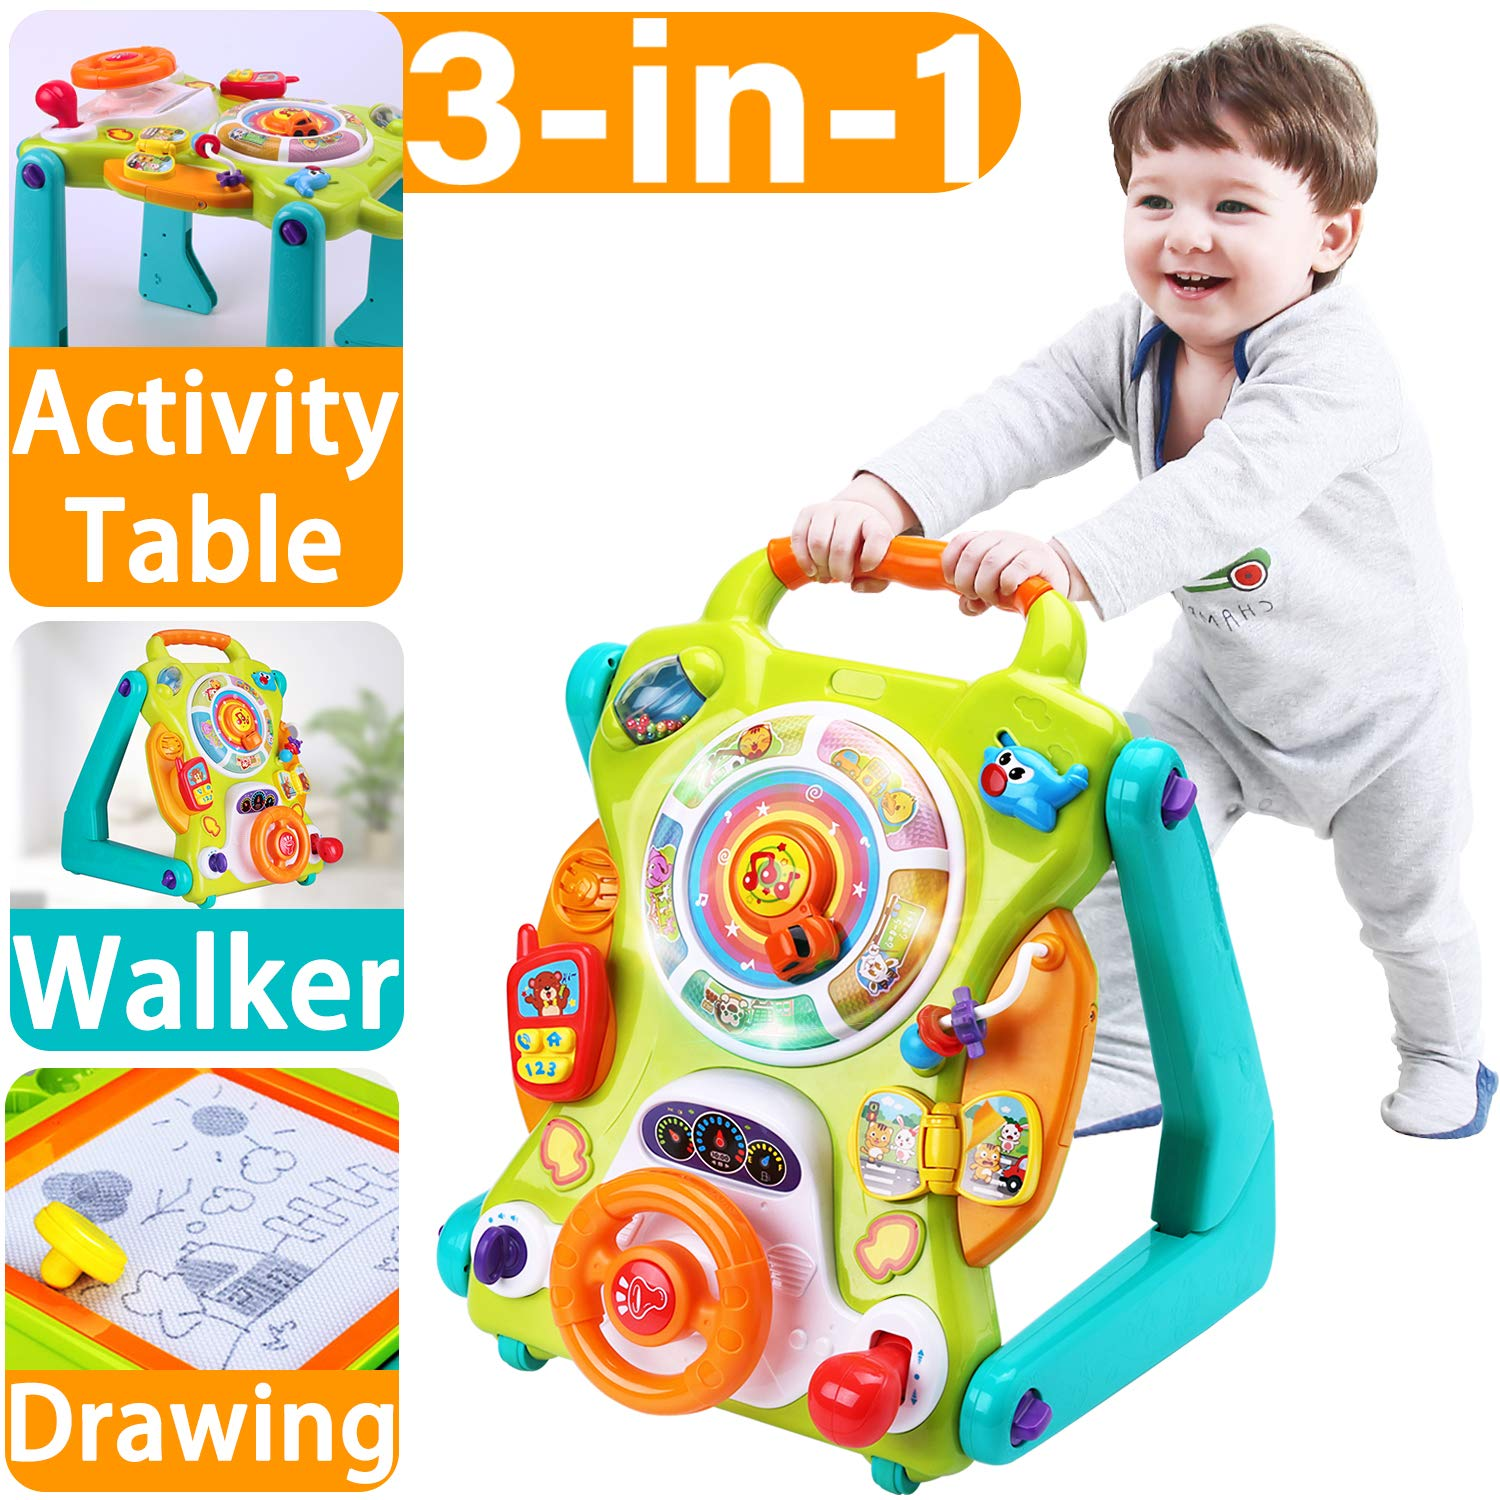 iPlay, iLearn Baby Sit to Stand Walkers Toys, Kids Activity Center, Toddlers Musical Fun Table, Lights and Sounds, Learning, Birthday Gift for 9, 12, 18 Months, 1, 2 Year Olds, Infants, Boys, Girls by iPlay, iLearn